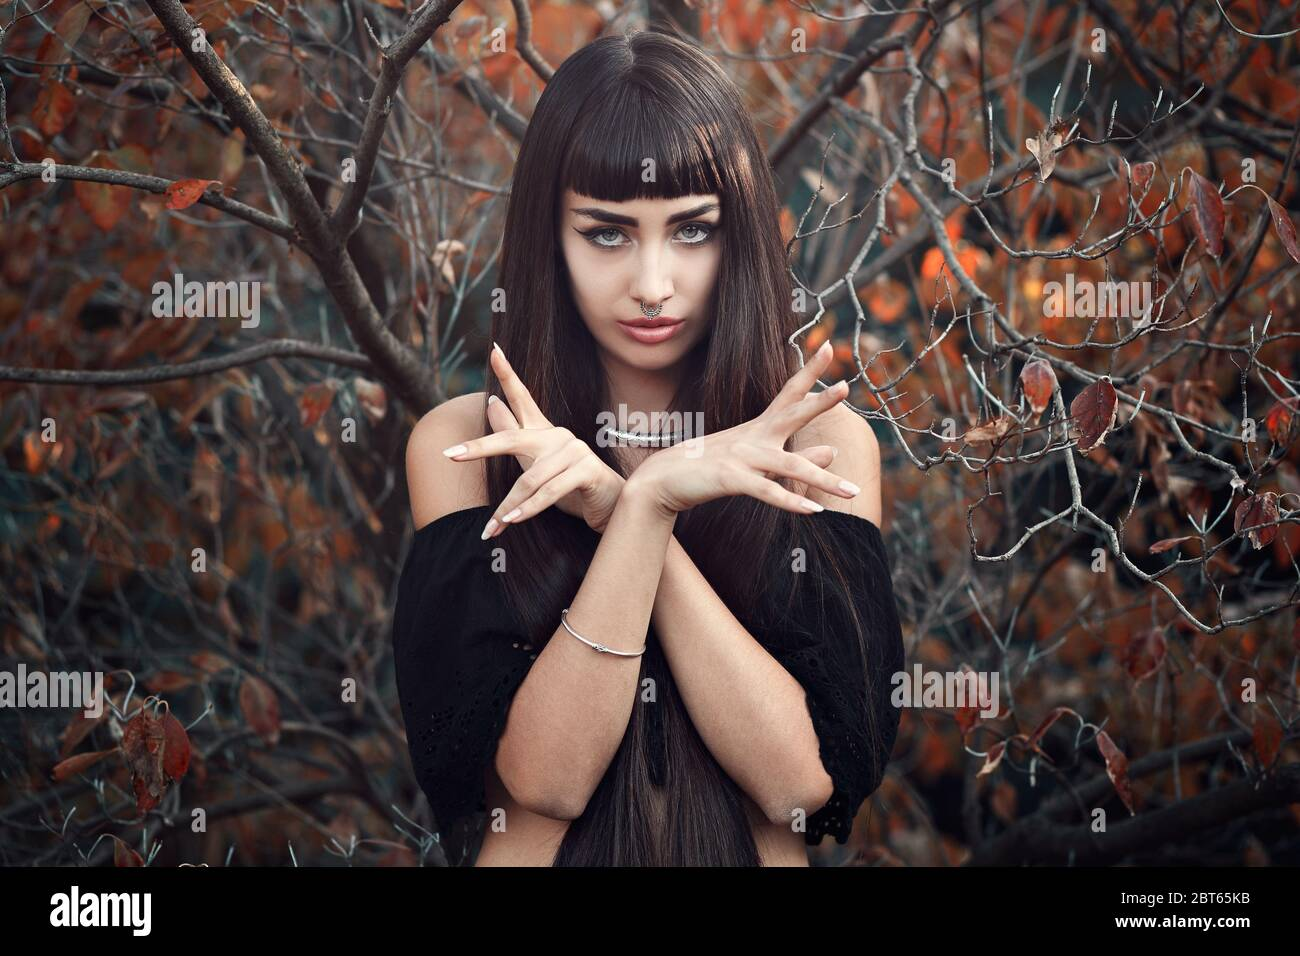 British hot girls gypsy video Portrait Of A Gypsy Girl High Resolution Stock Photography And Images Alamy